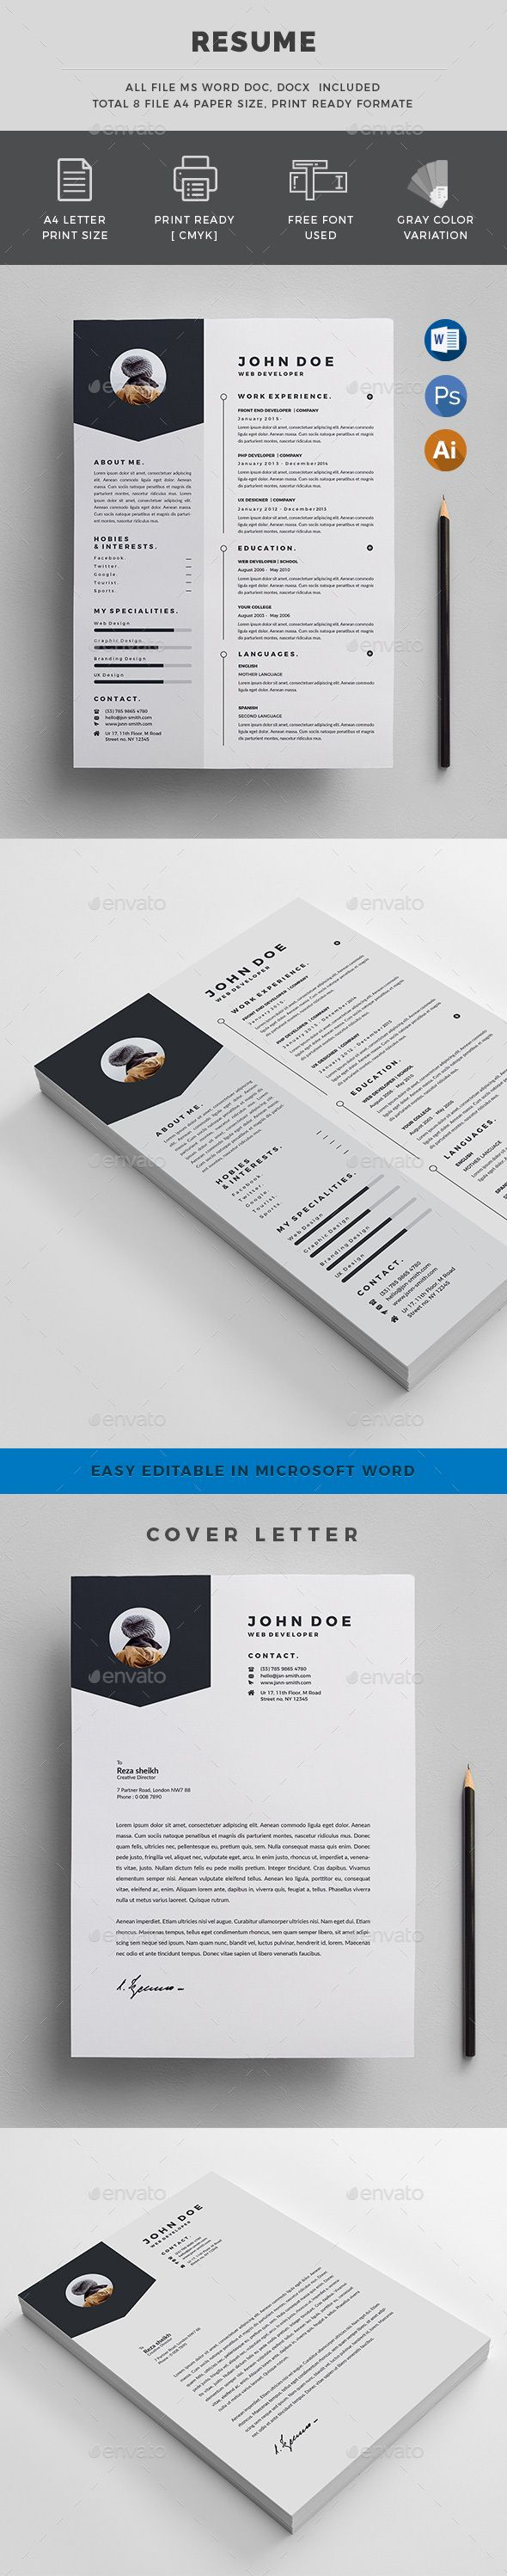 #Resumes - Resumes Stationery Download here: https://graphicriver.net/item/resumes/19448196?ref=alena994